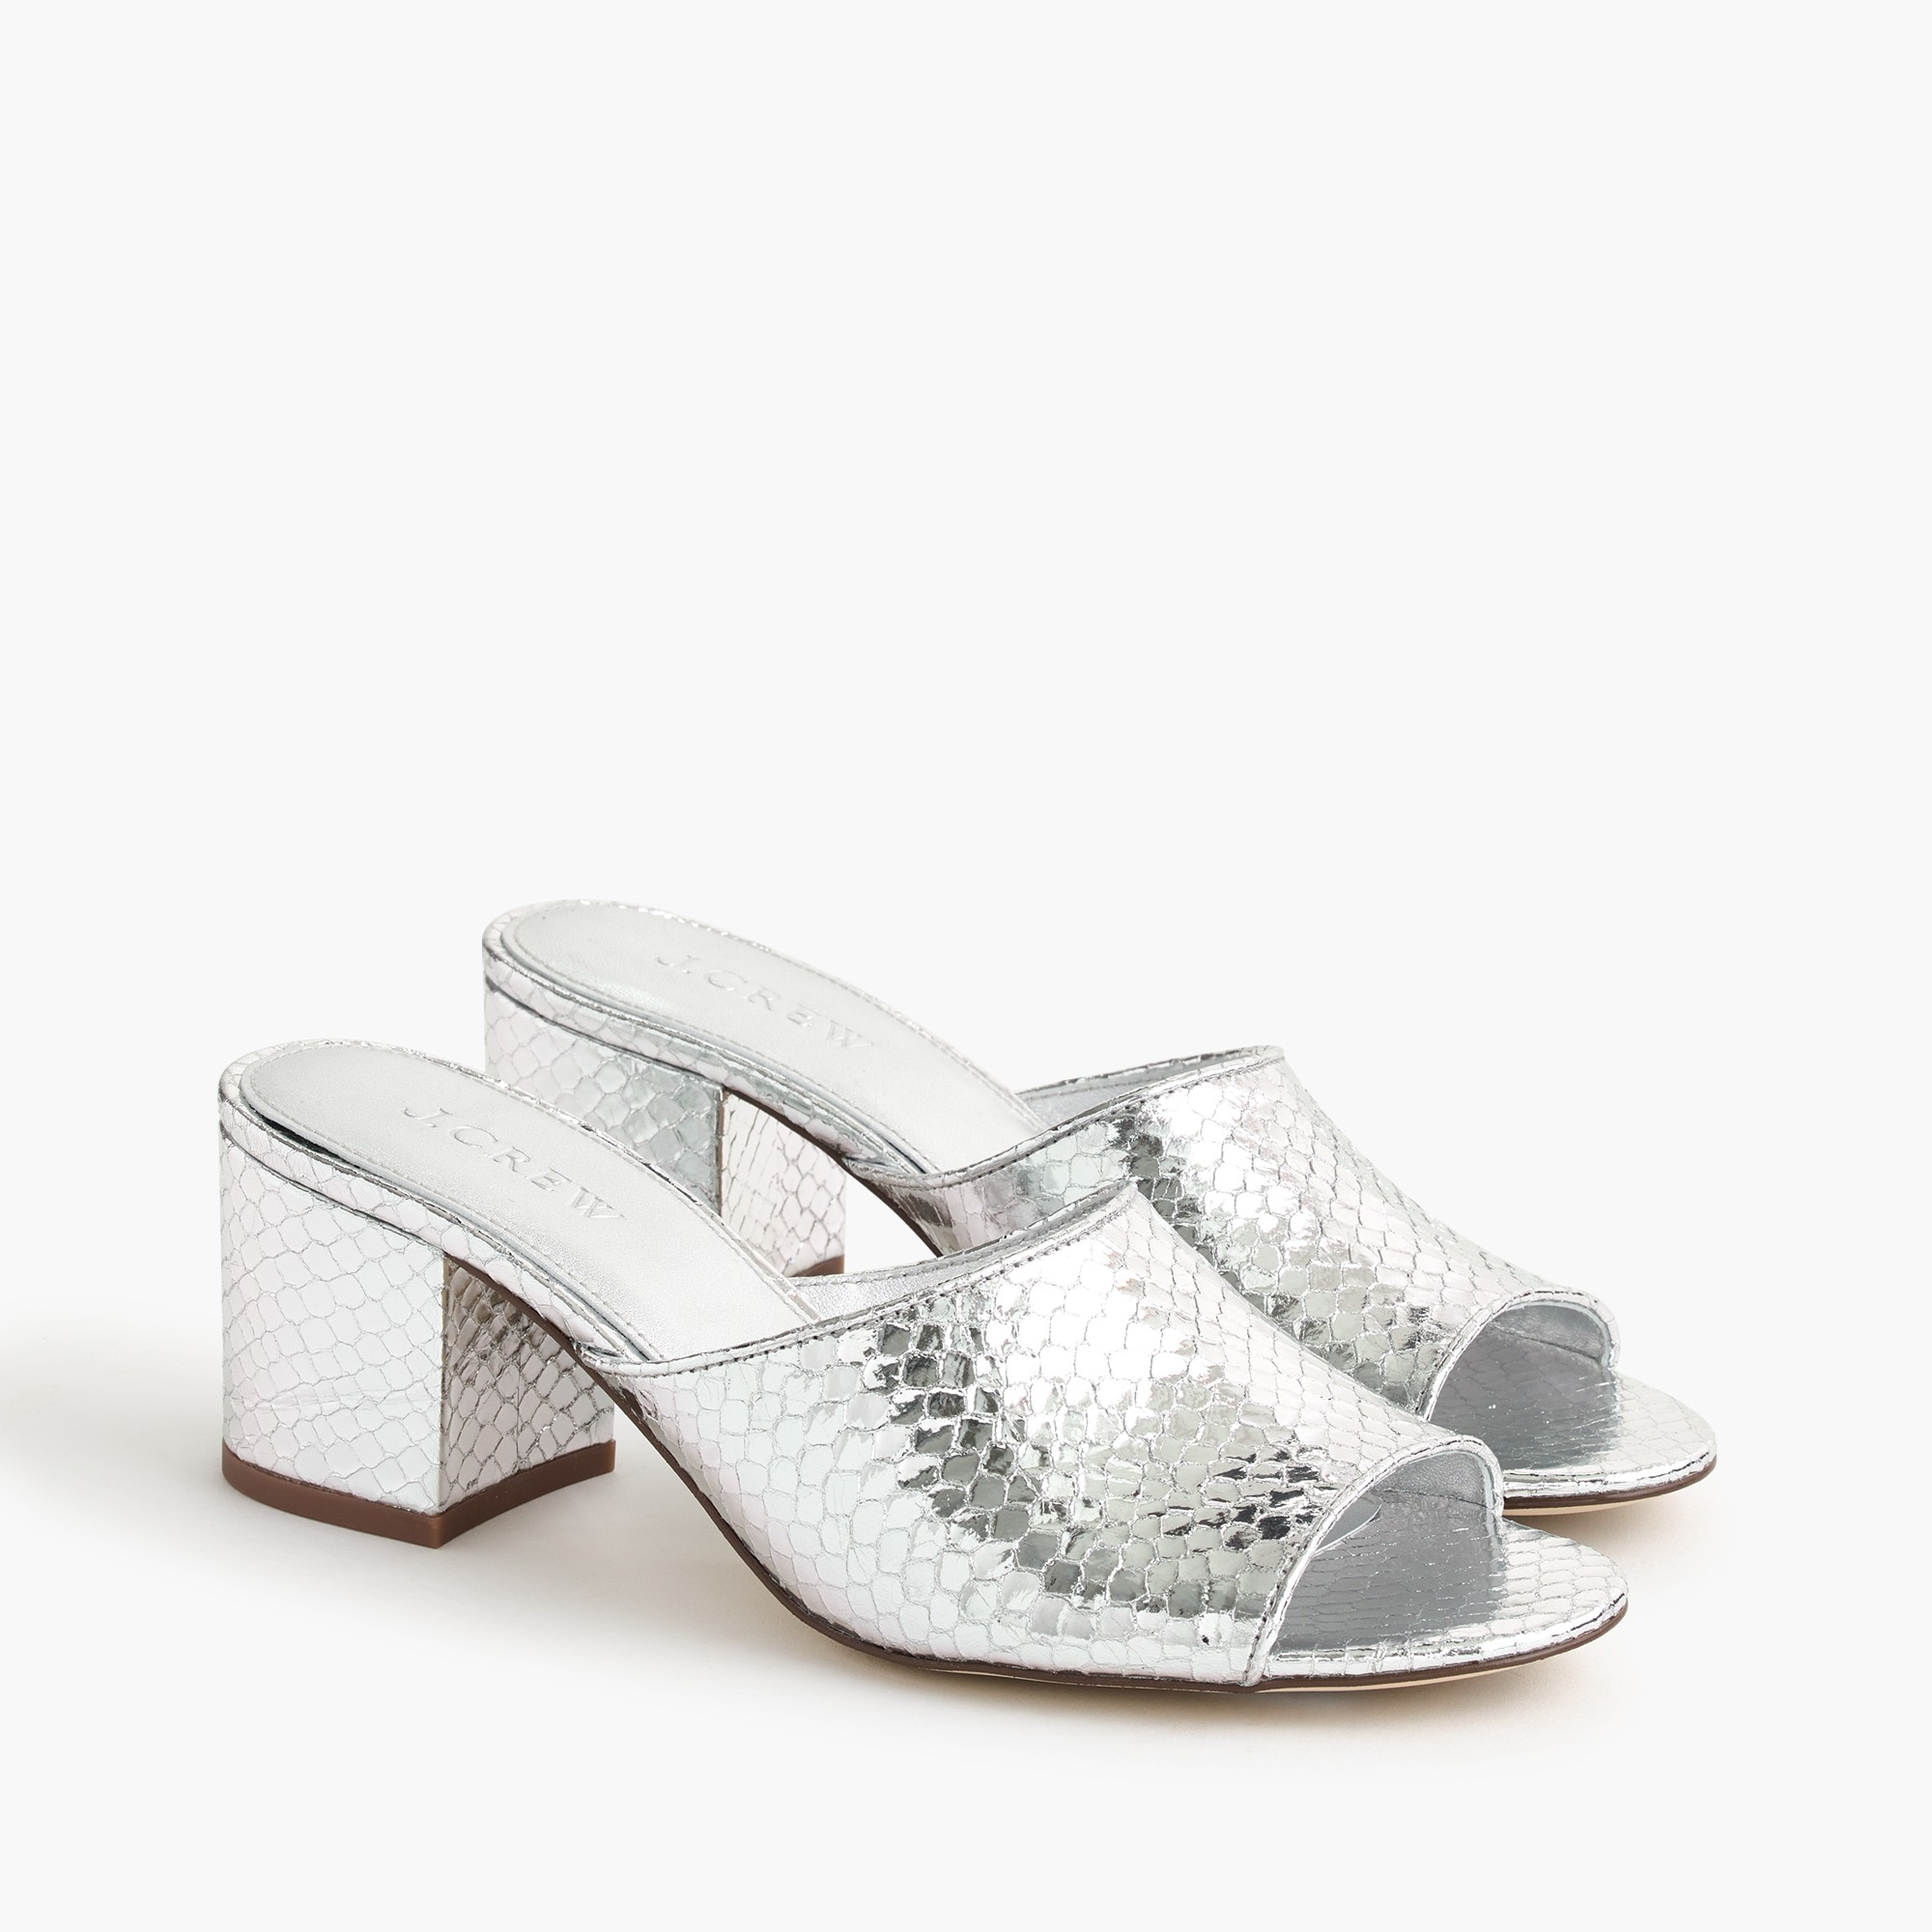 All-day mule (60mm) in metallic snakeskin women shoes c